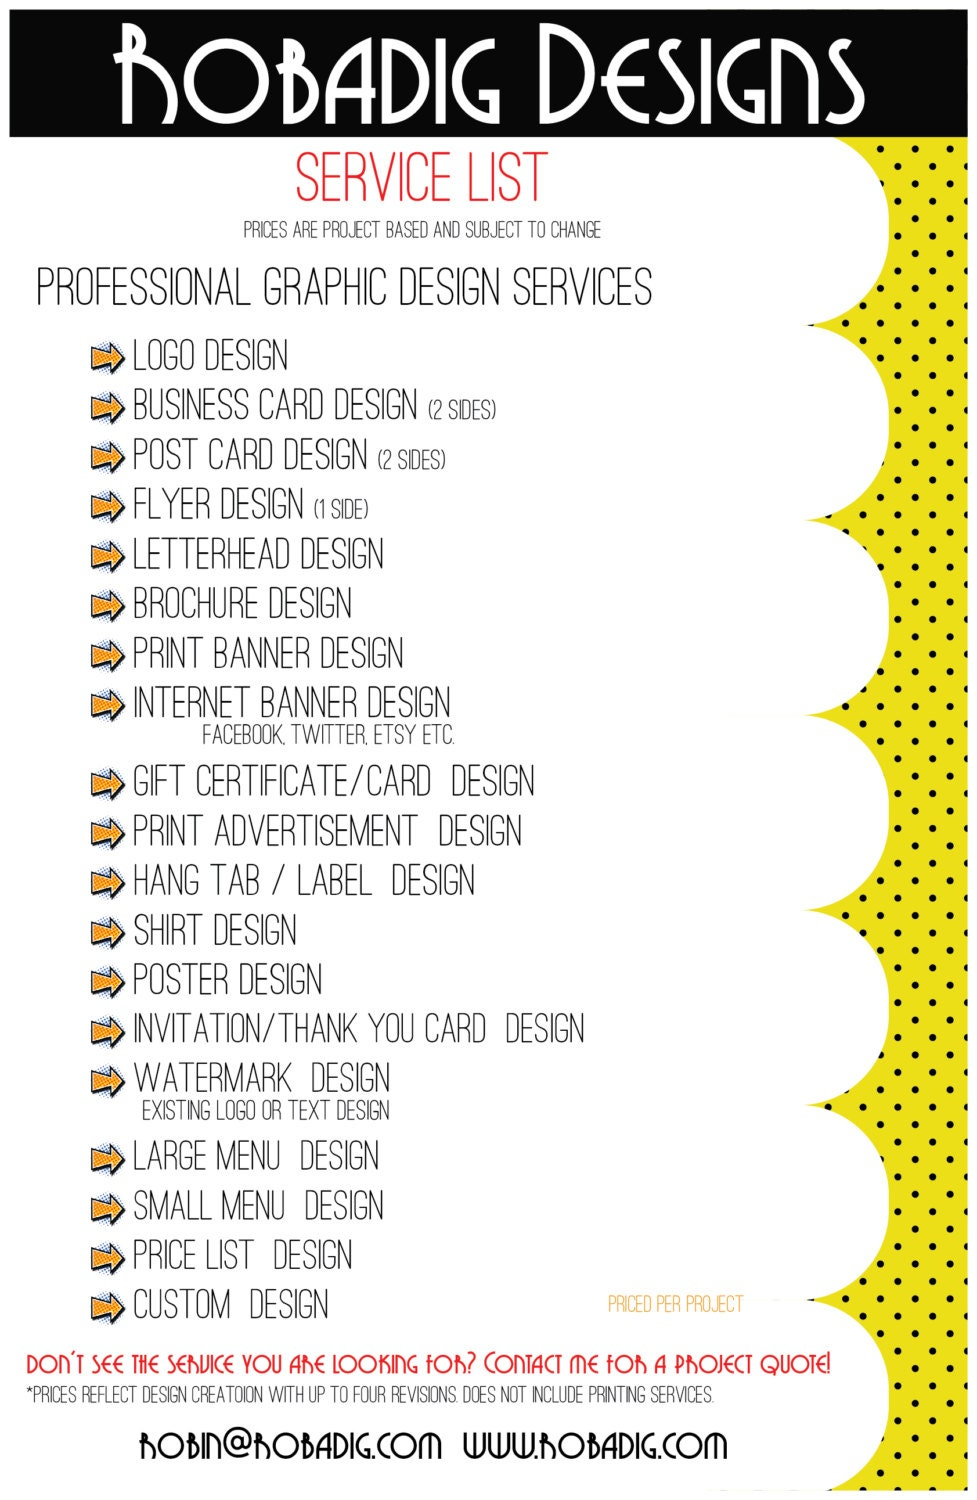 Business card graphic design rates choice image card design and business card graphic design rates image collections card design business card graphic design rates images card reheart Gallery